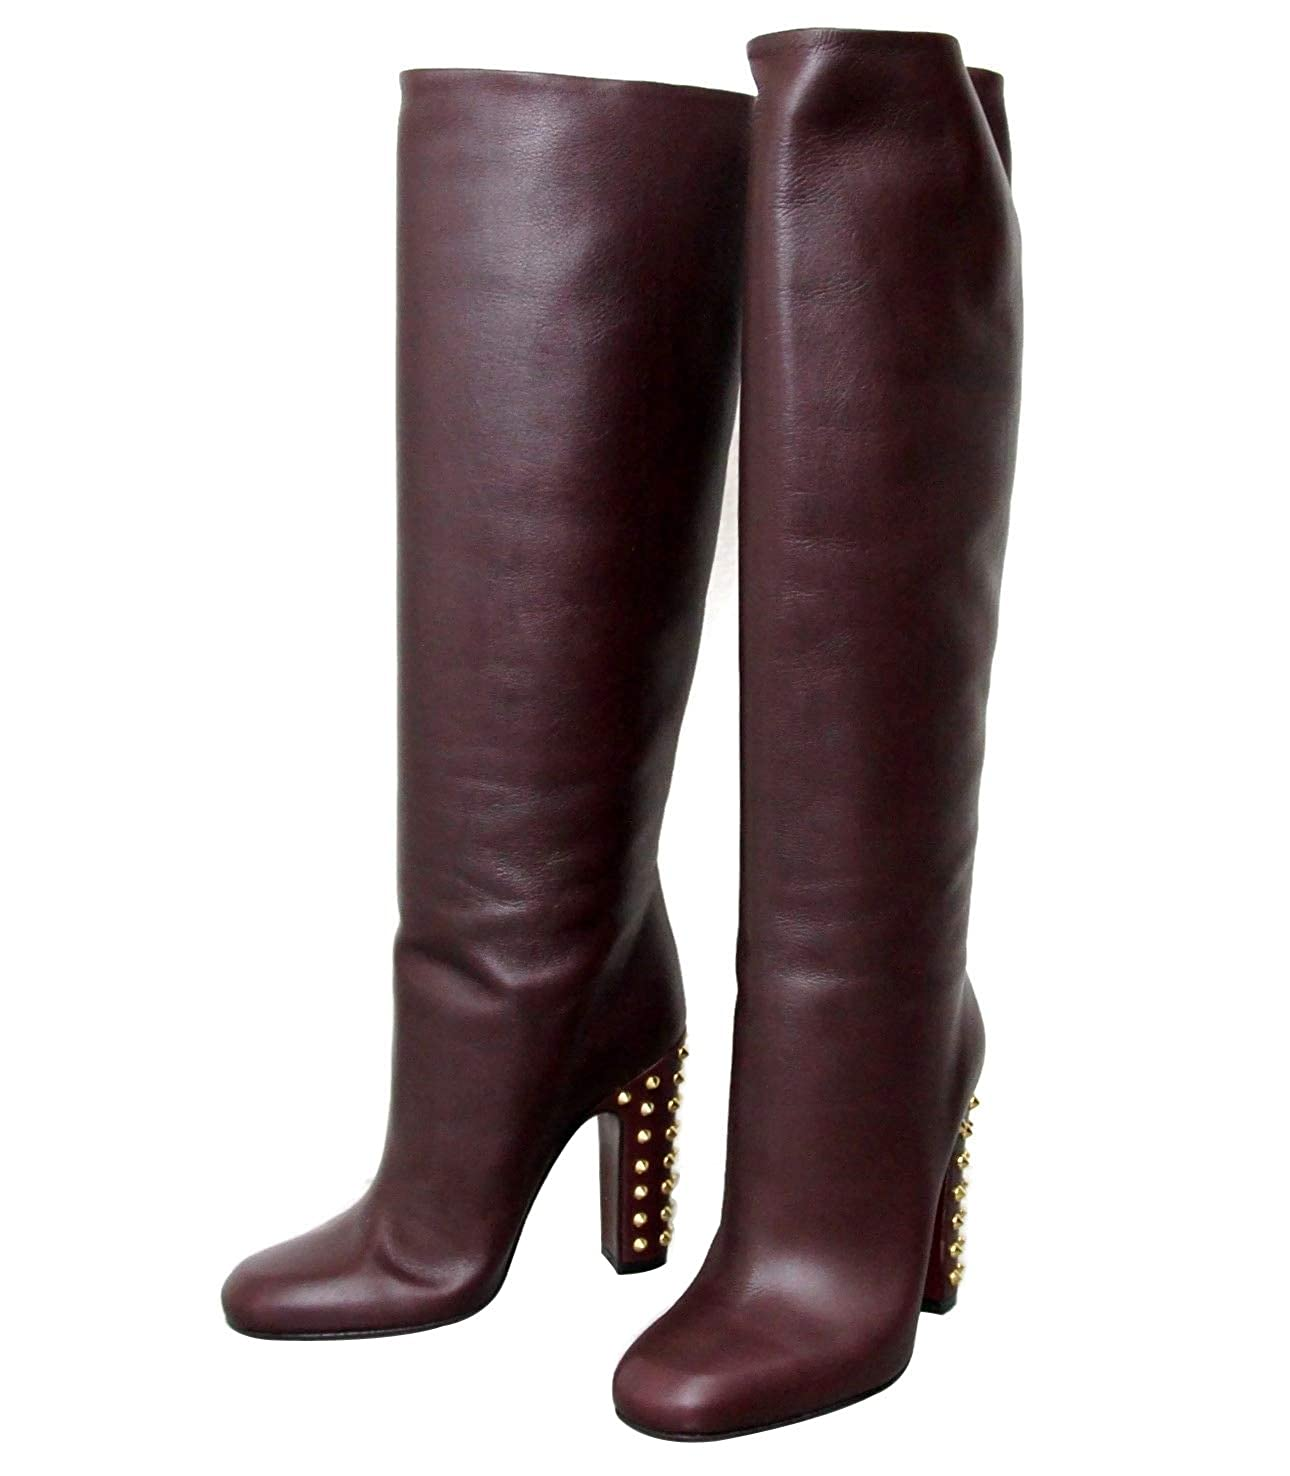 dcd198f32 Amazon.com | Gucci Women's Leather Knee High Studded Jacquelyne Tall Boots  297199 | Knee-High